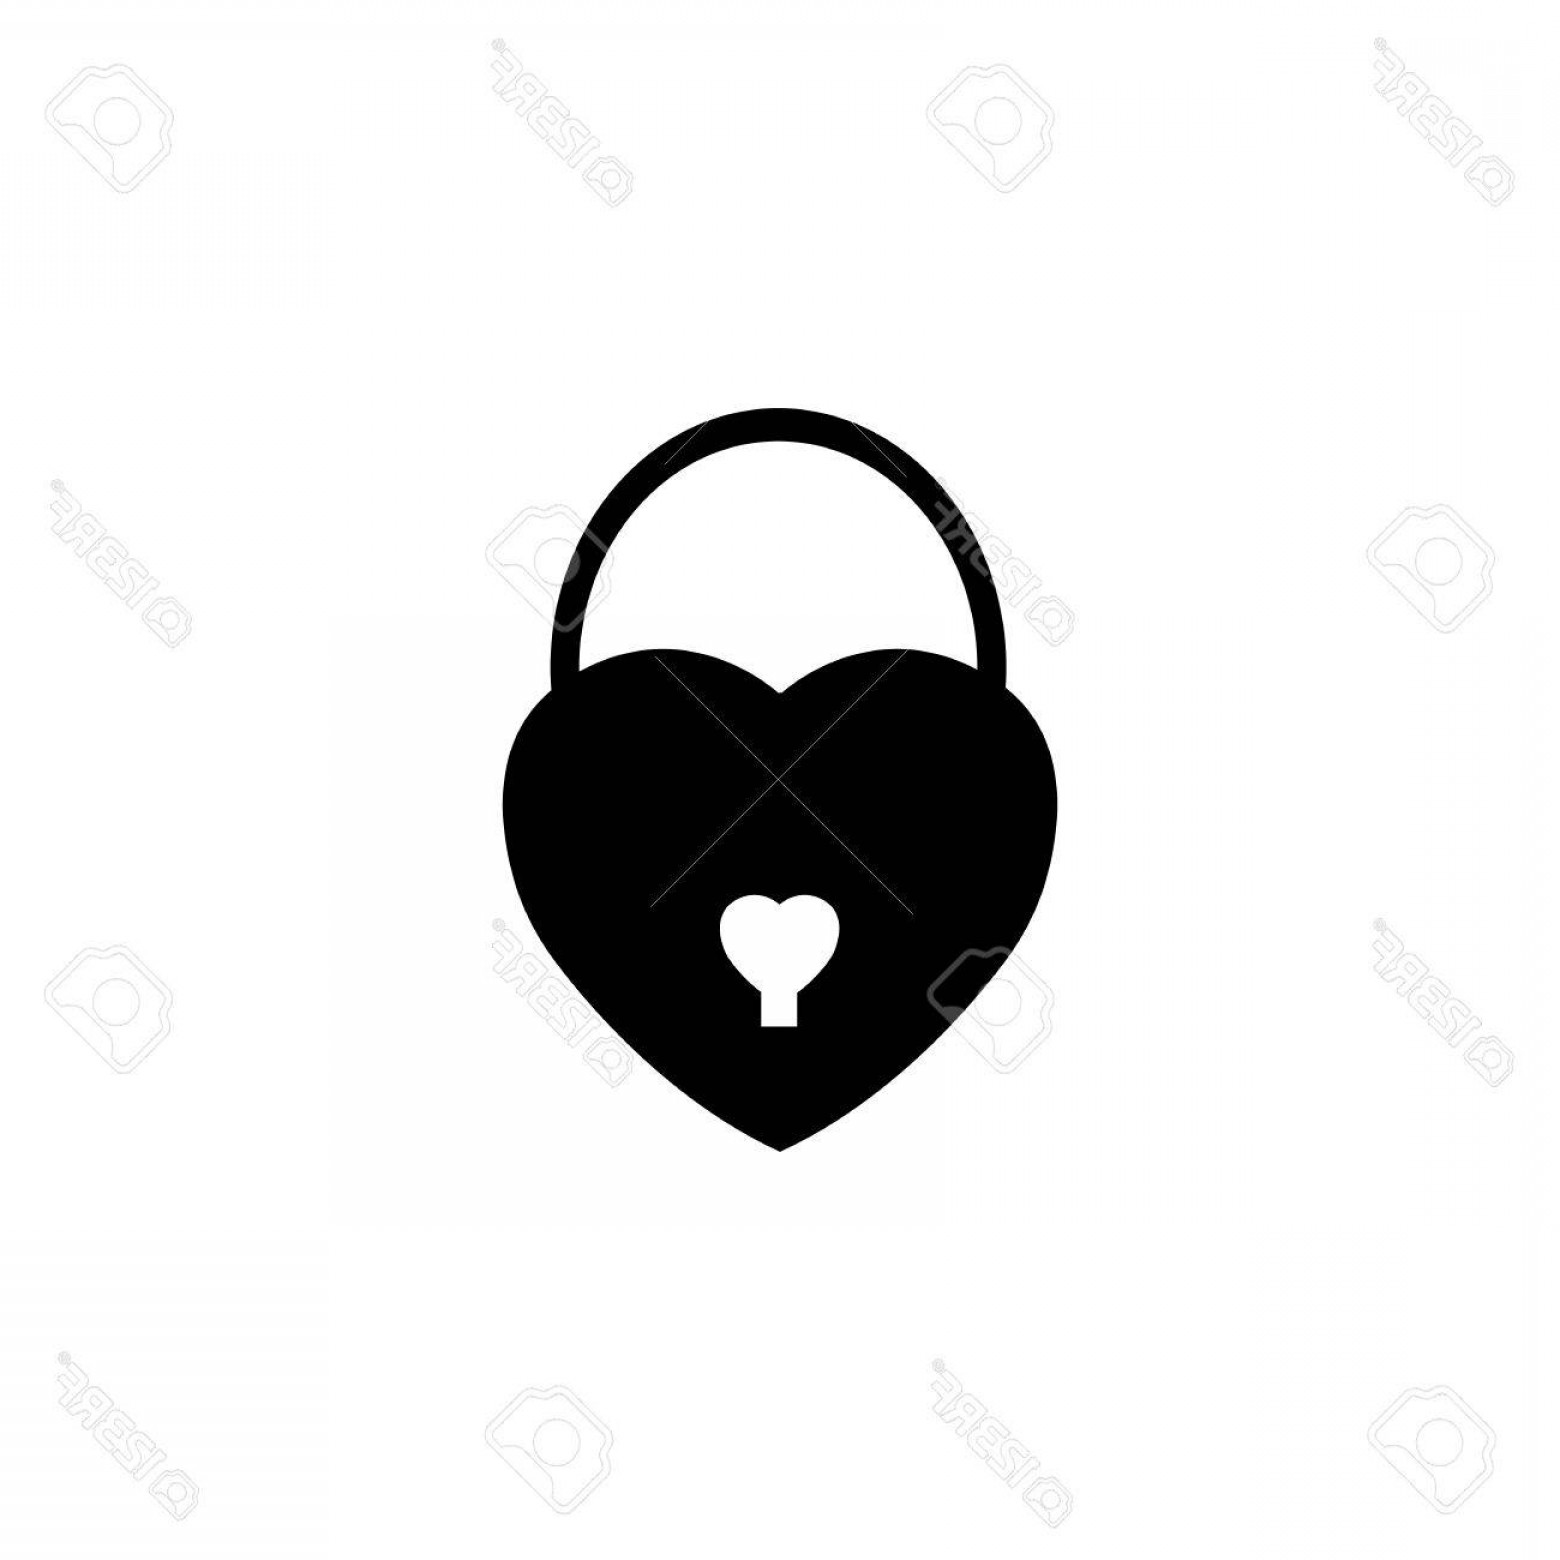 Solid Heart Vector Drawing: Photostock Vector Lock Heart Shaped Solid Icon Love Sign Valentine S Day Love Concept Vector Graphics A Filled Pattern